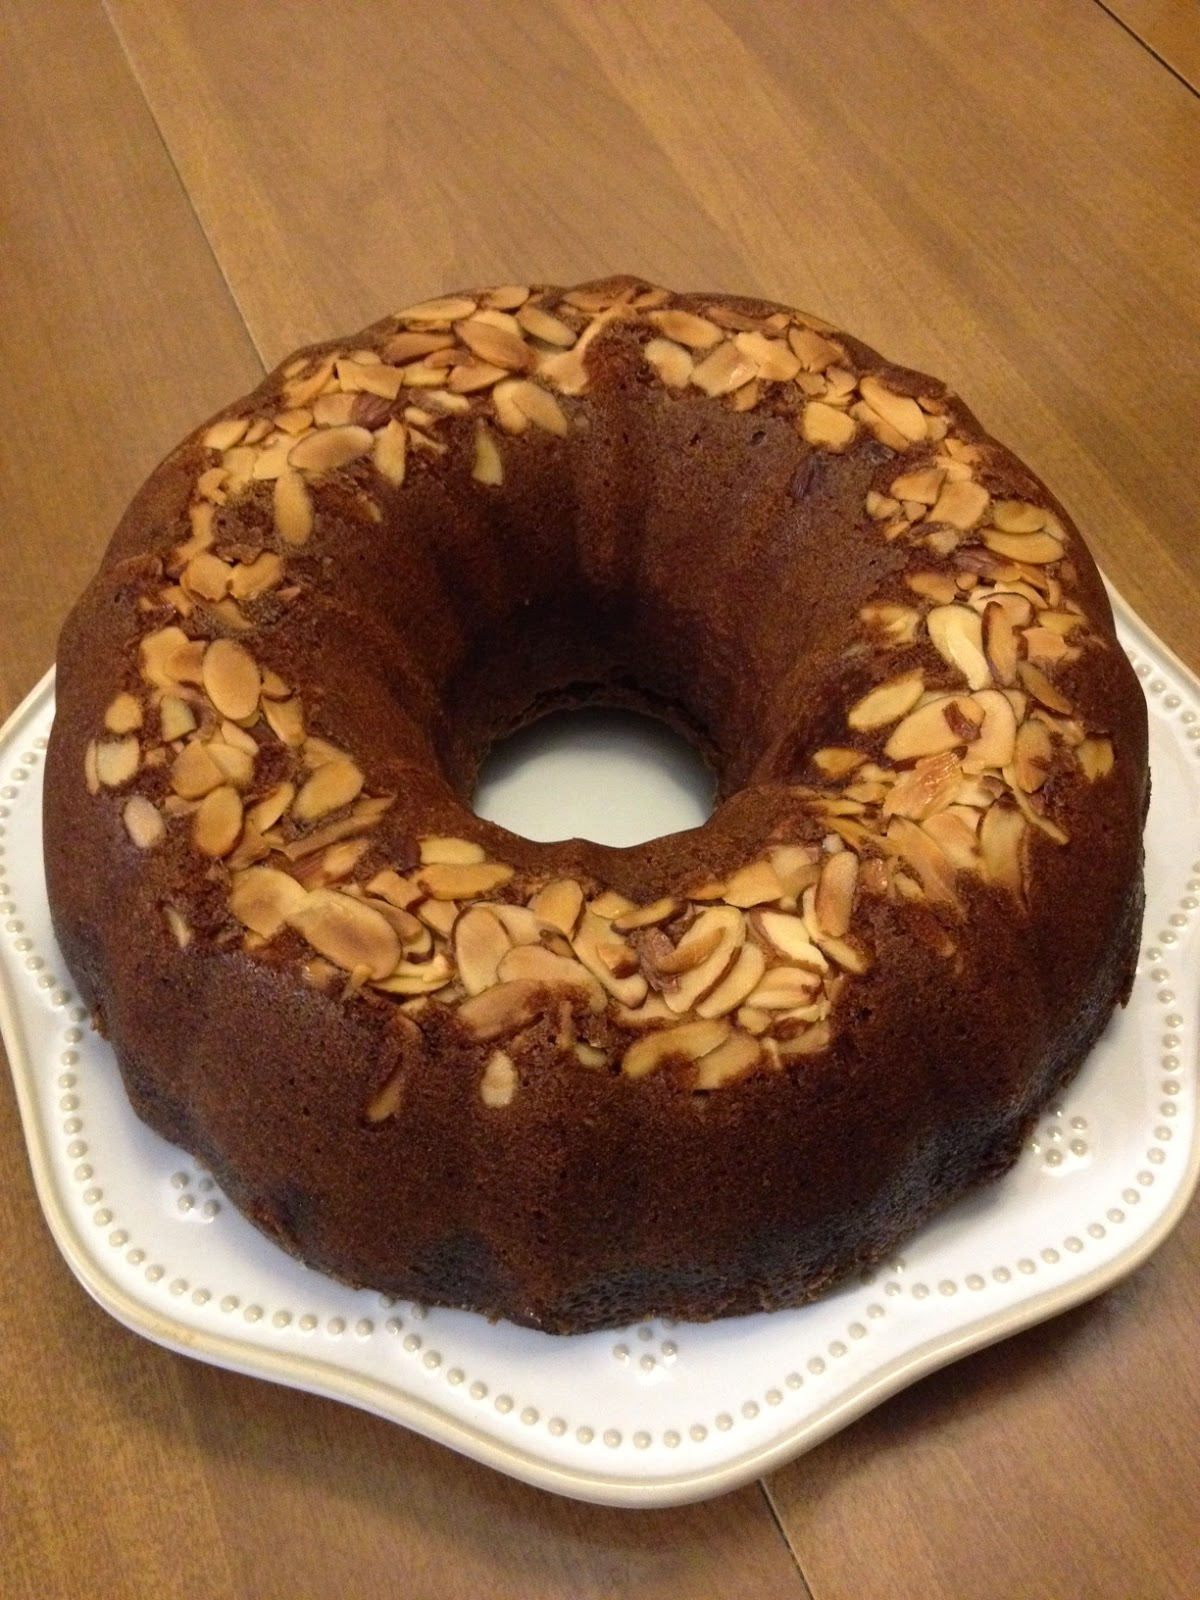 Oven Delights: Amaretto-Almond Pound Cake